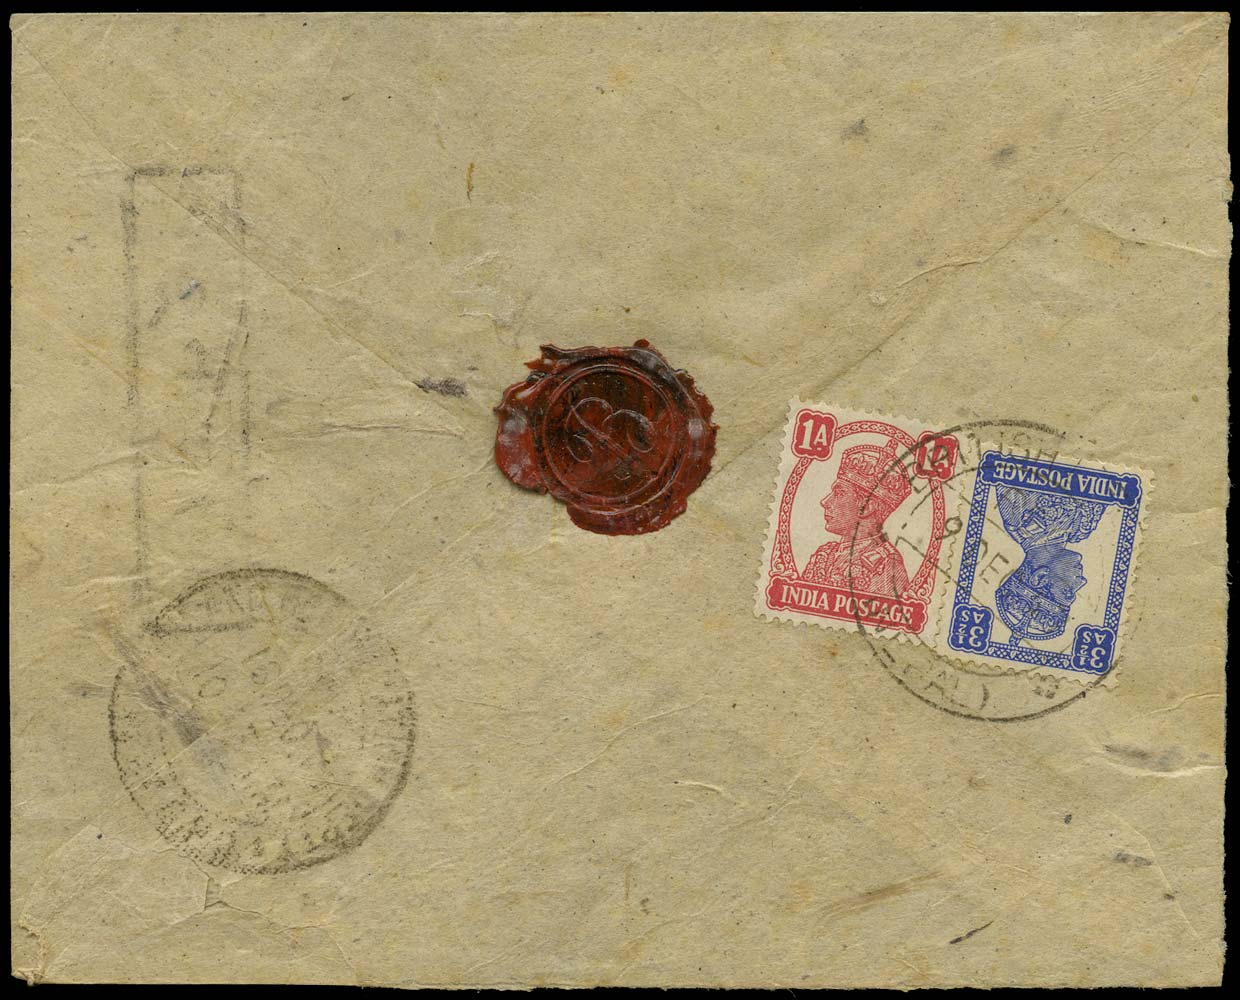 INDIA USED ABROAD 1949 Cover from British Legation Nepal